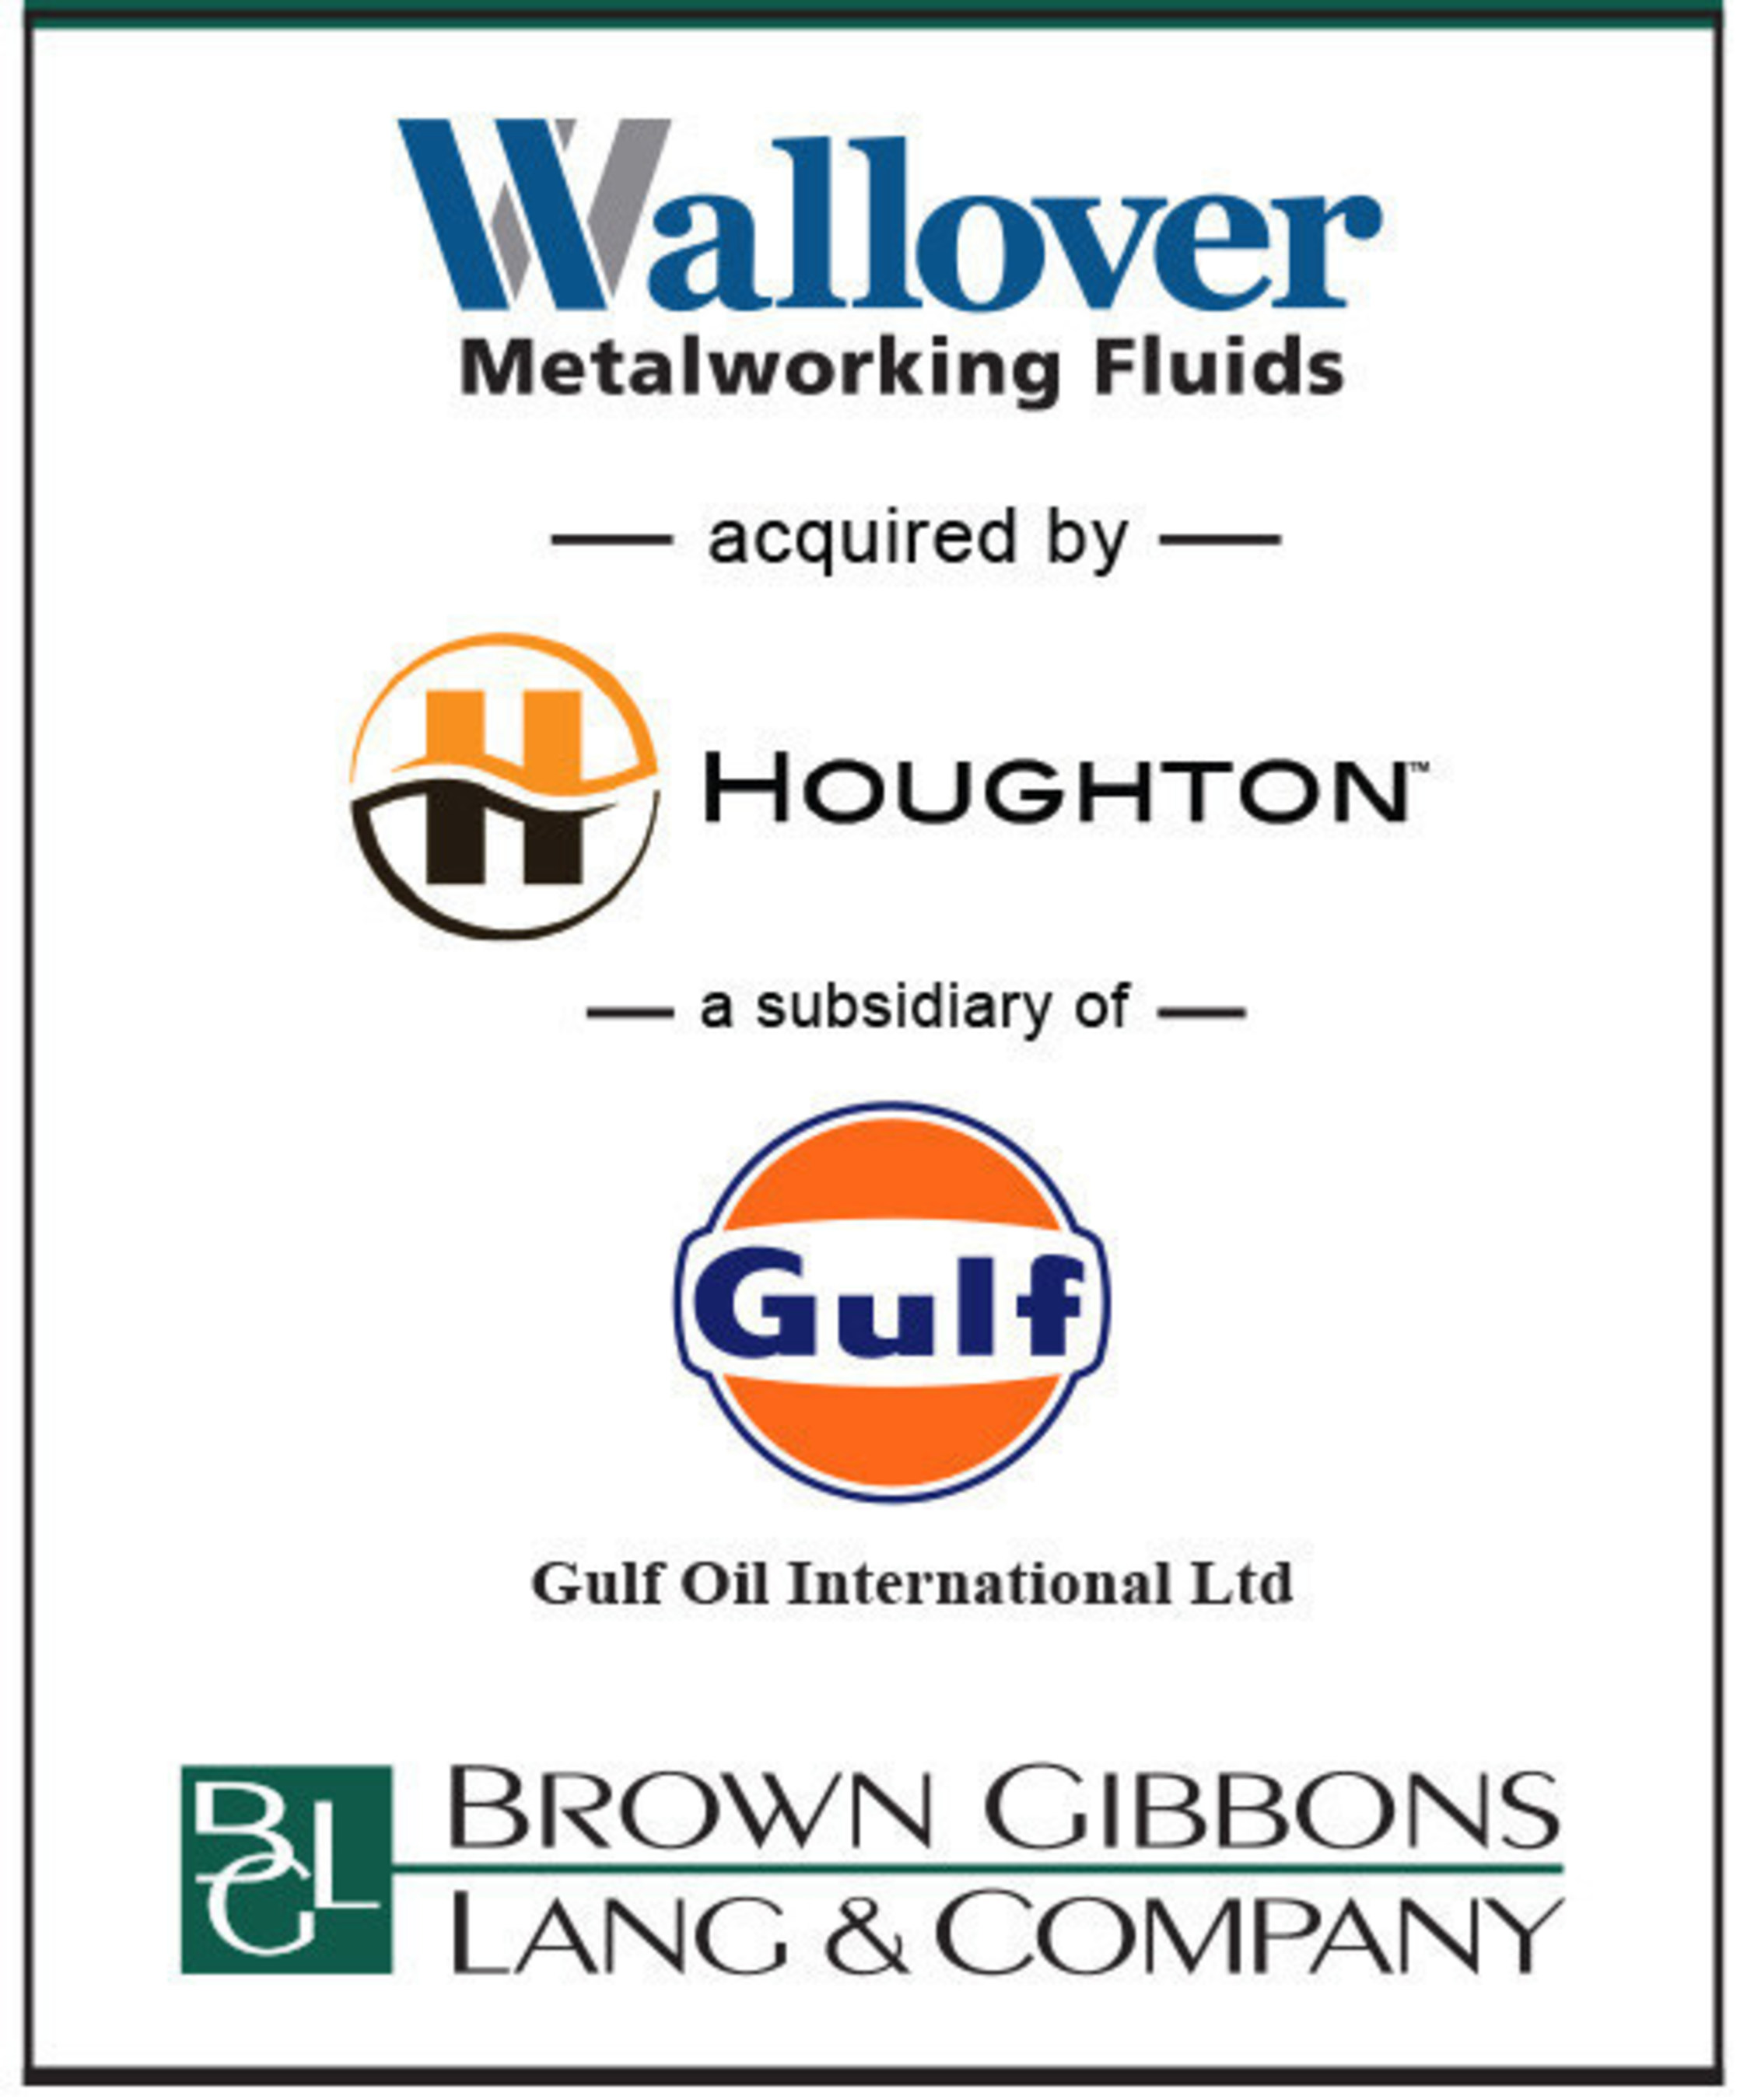 BGL announces the sale of Wallover Enterprises, Inc. (Wallover or the Company) to Houghton International Inc., a subsidiary of Gulf Oil International. BGL's Industrials team served as the exclusive financial advisor to Wallover in the transaction. Established in 1863, Wallover is one of the oldest independent formulators of customized and highly engineered metalworking fluids and industrial lubricants in North America...